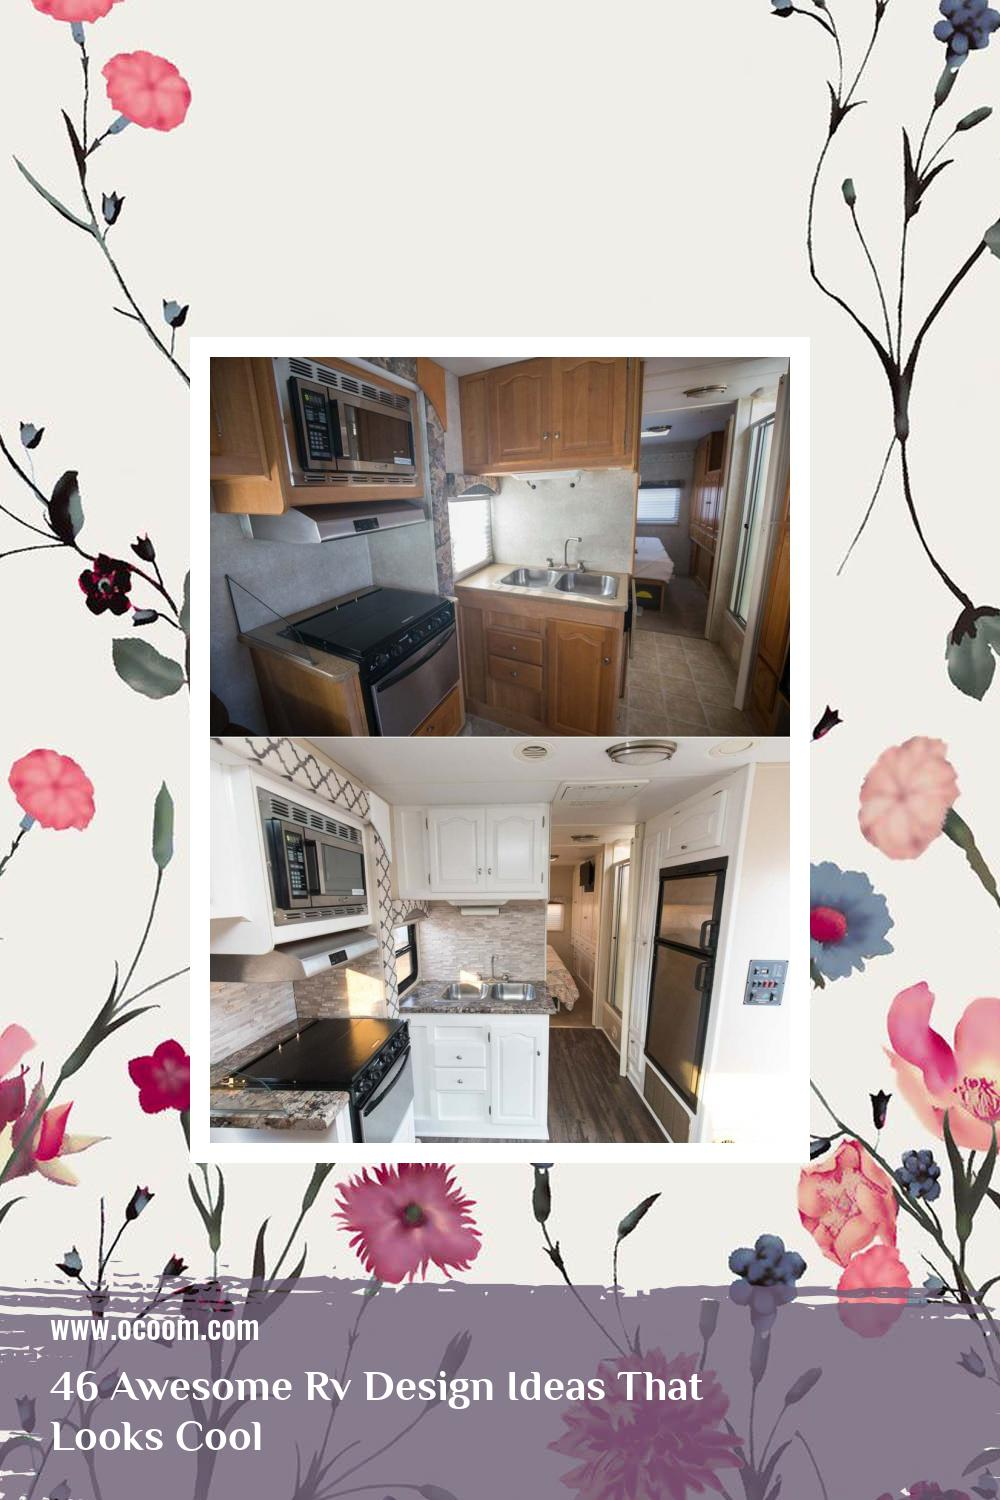 46 Awesome Rv Design Ideas That Looks Cool 20